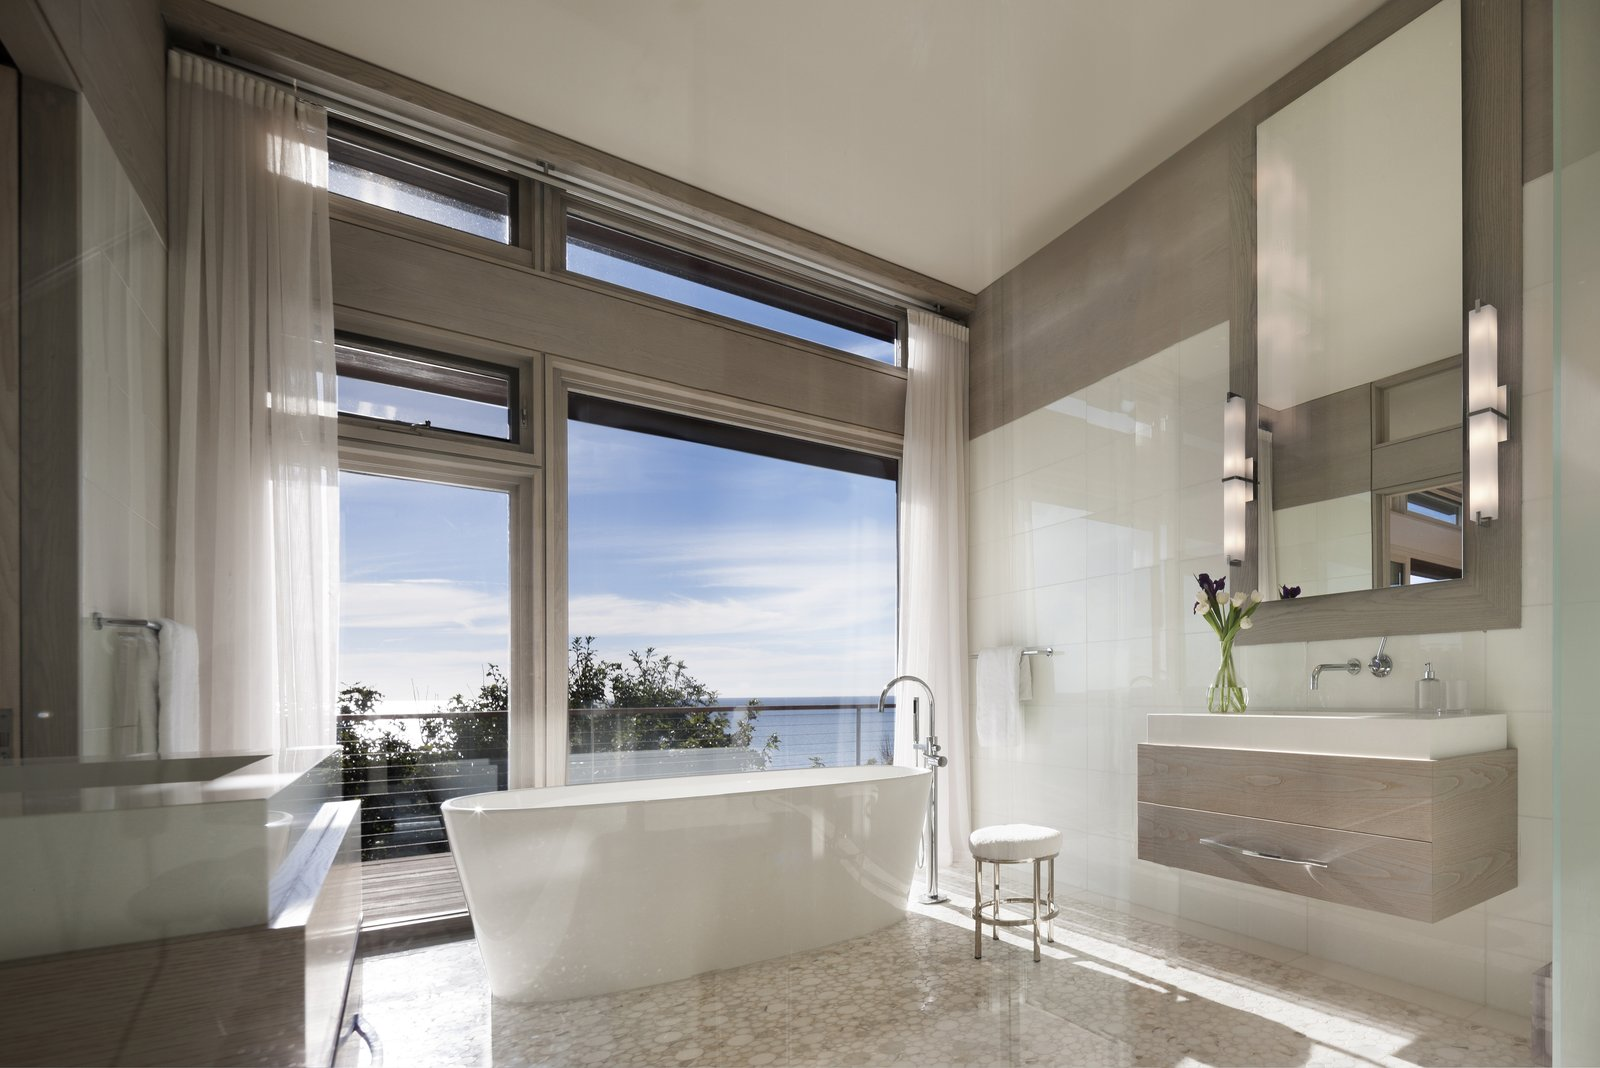 The master bathroom provides a place to escape and unwind.  The Cape